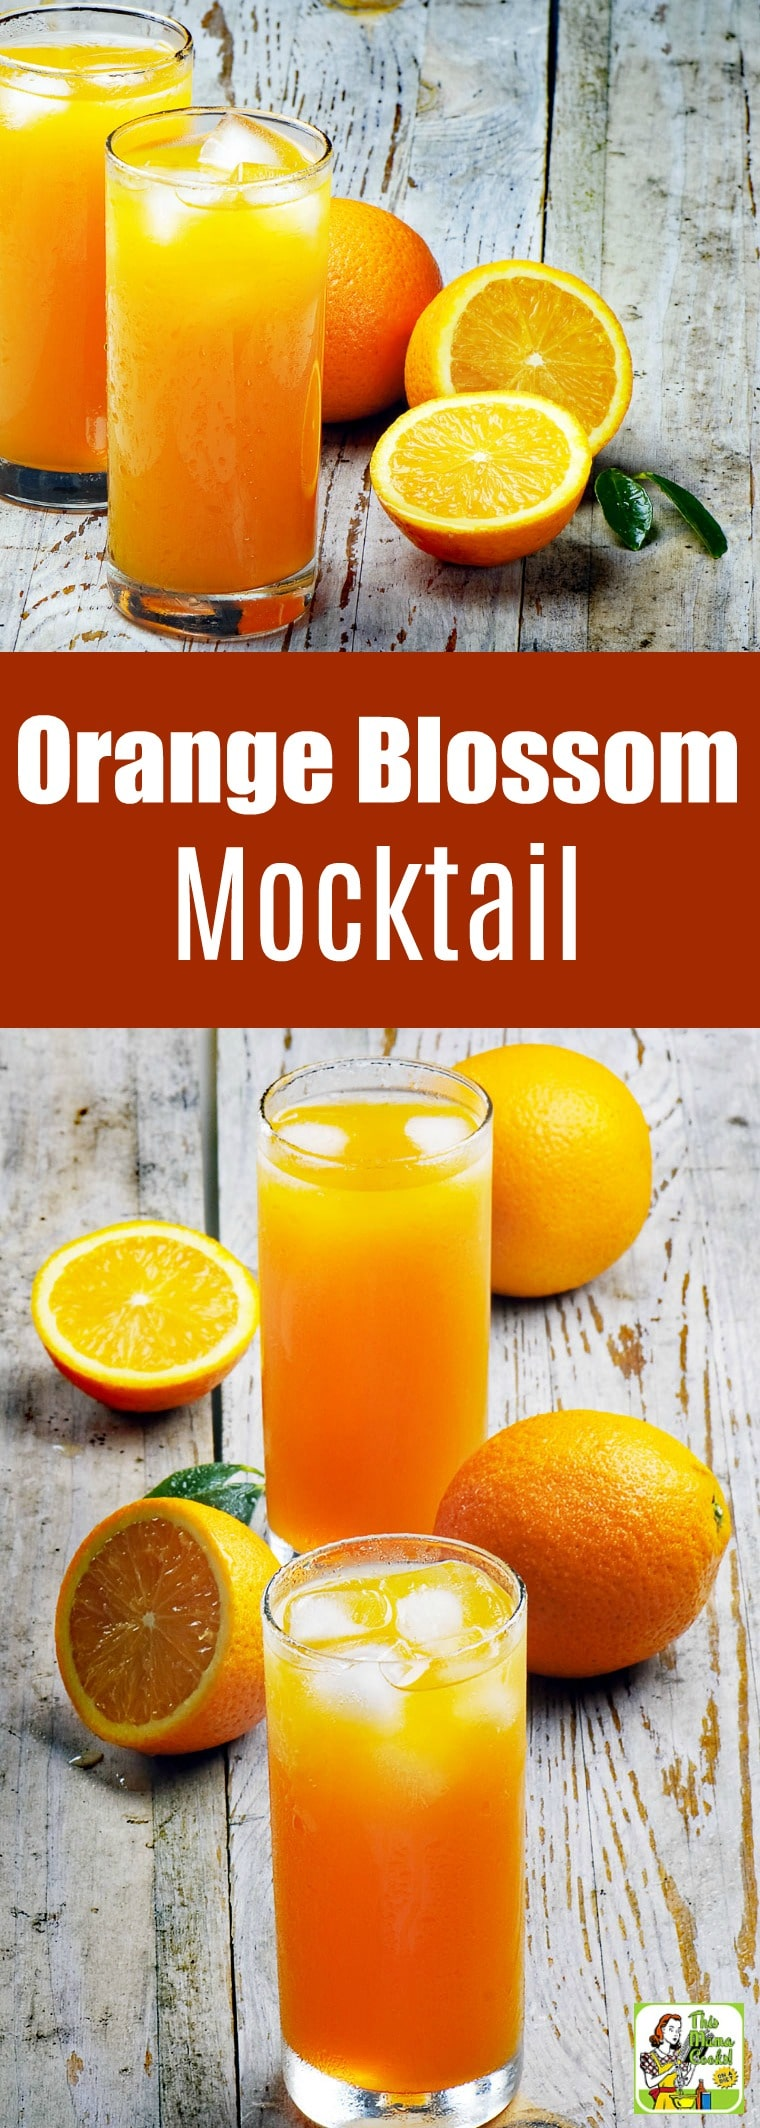 This Orange Blossom Mocktail is a wonderful drink for kids or when you don't want to imbibe. Make a big pitcher of this Orange Blossom Drink for parties. #recipes #easy #recipeoftheday #easyrecipe #easyrecipes #healthydrinks #healthydrinksrecipe #mocktail #nonalcoholic #drinks #drinking #drinkrecipes #kidfriendly